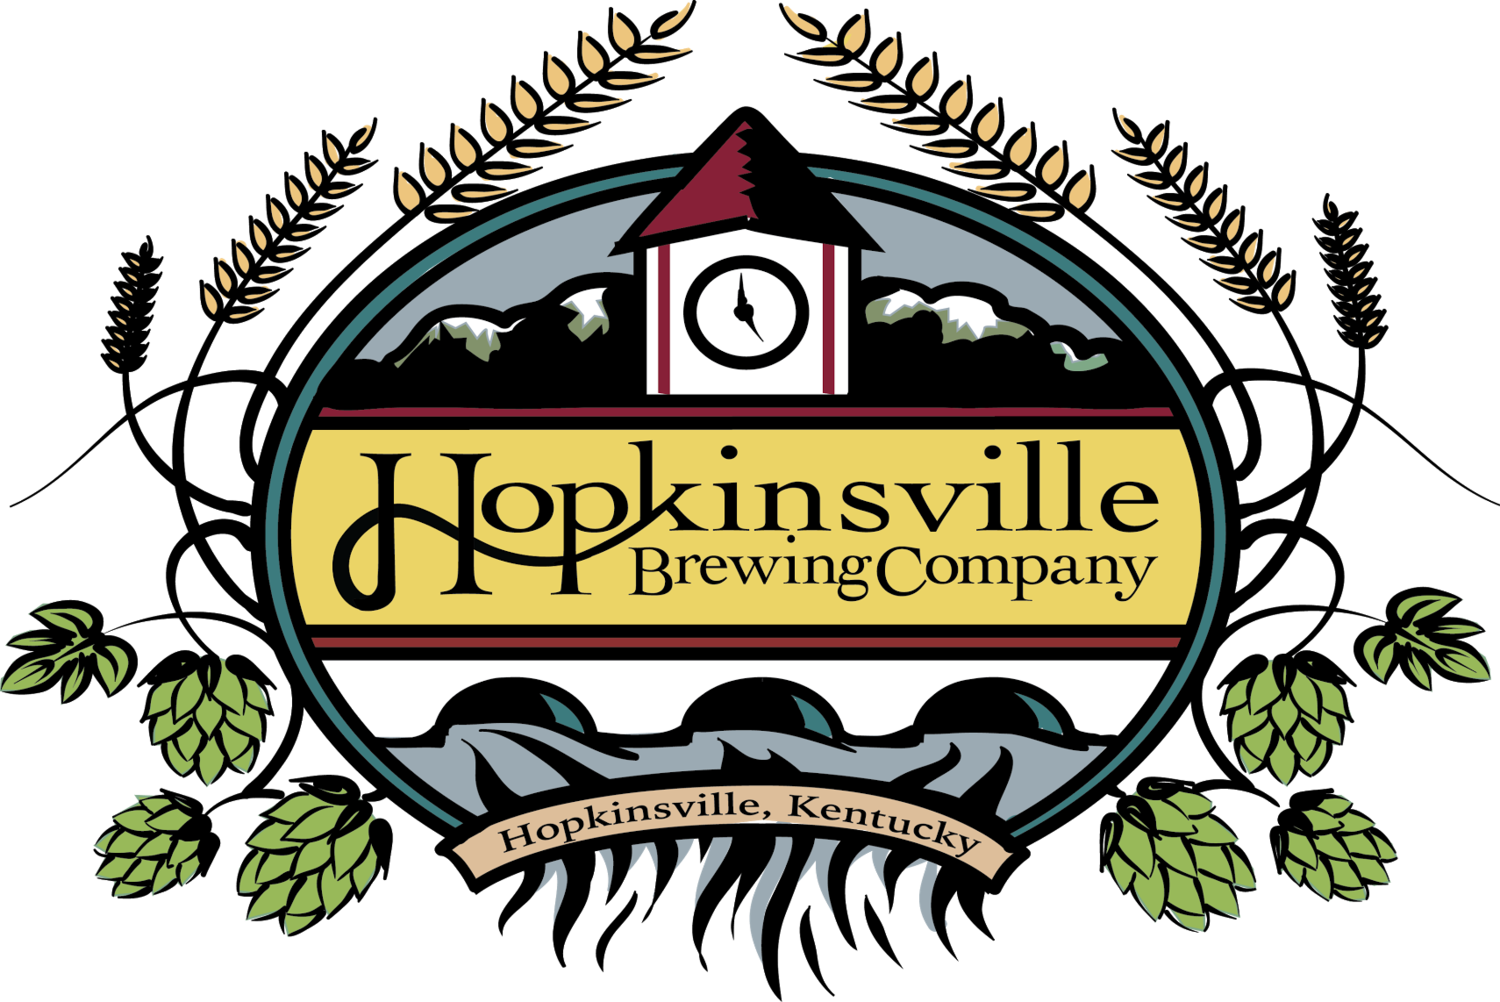 Thursdays At The Theatre Rbg Hopkinsville Brewing Company